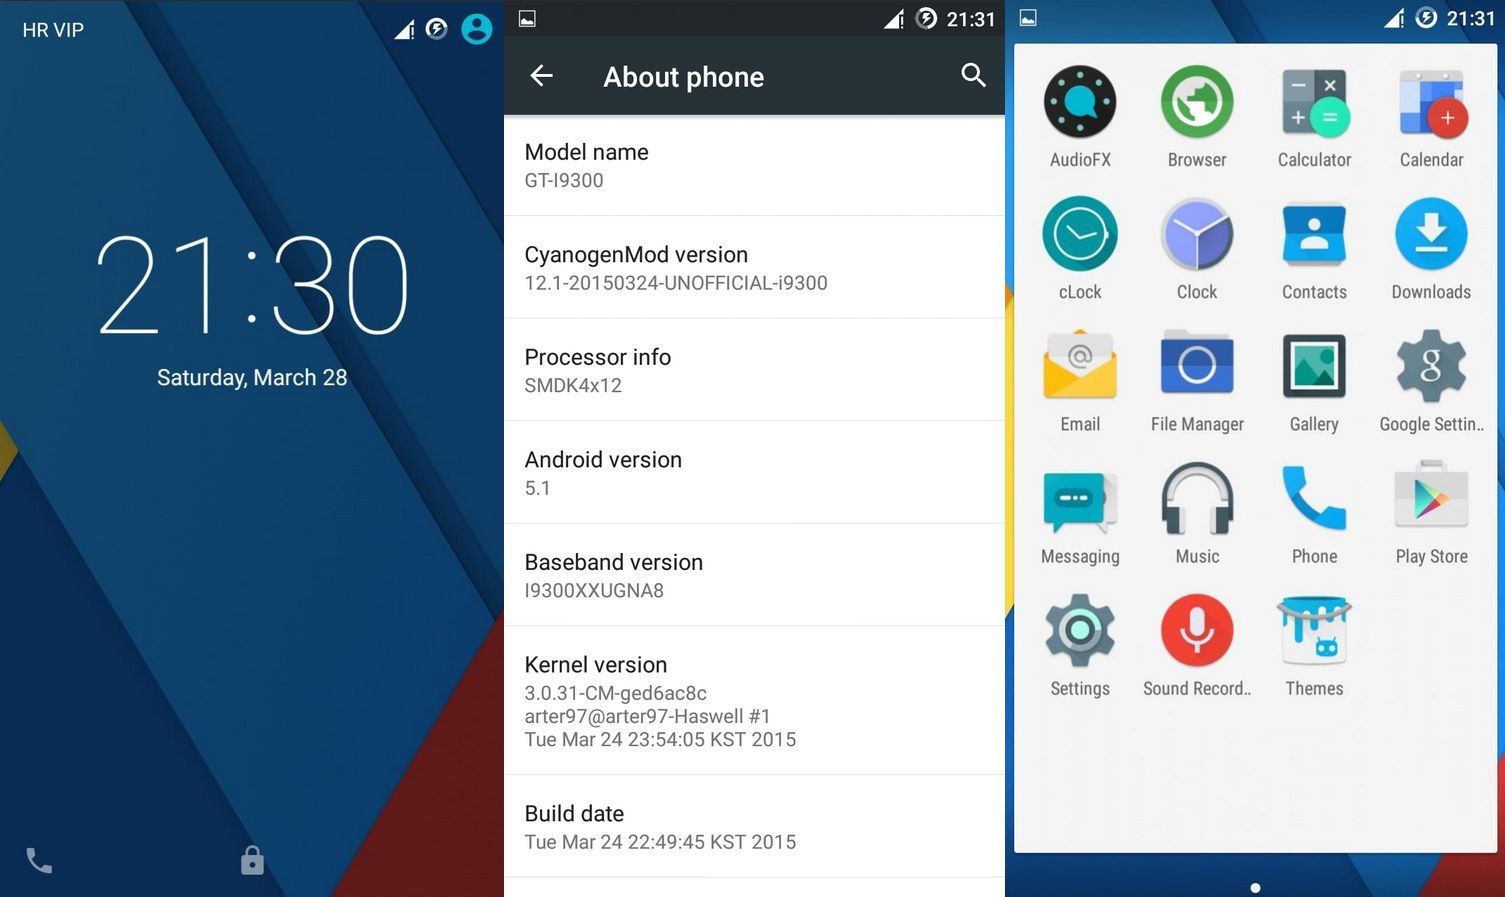 how to upgrade to android 5.1 manually